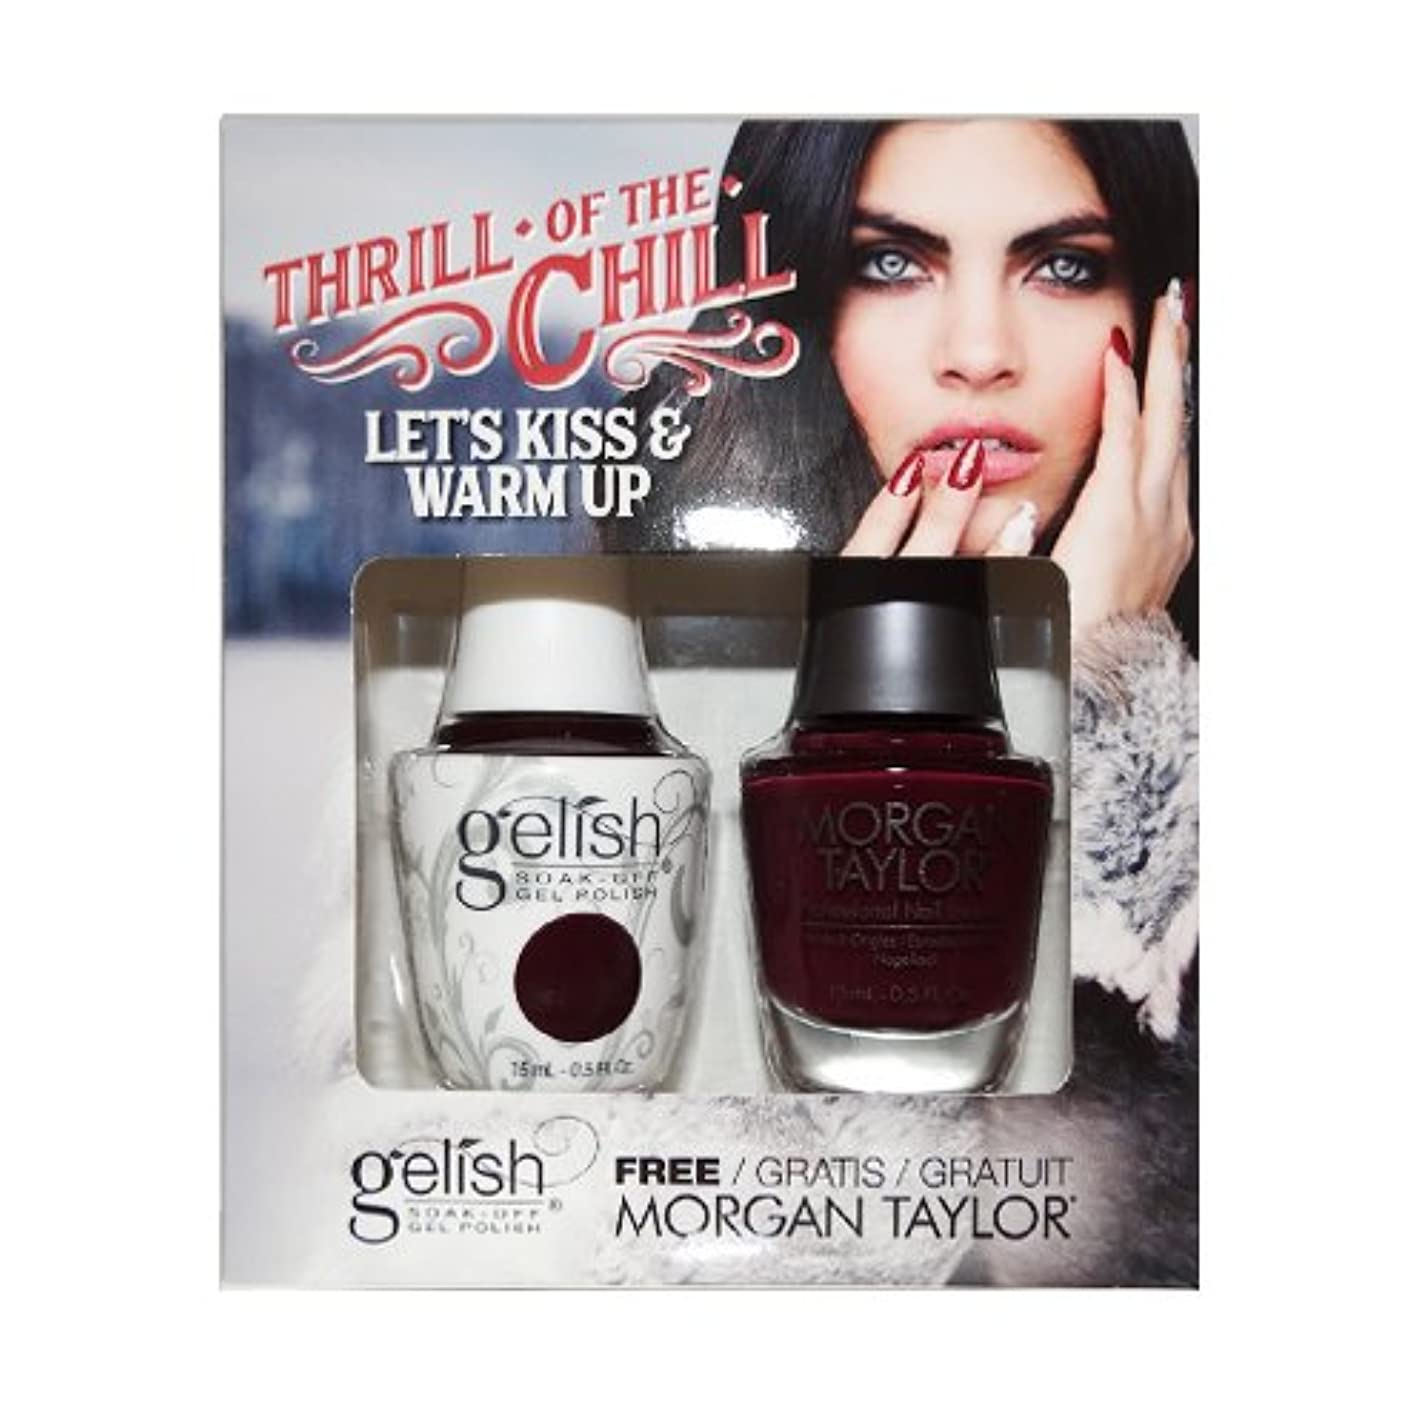 境界不注意考慮Harmony Gelish & Morgan Taylor - Two Of A Kind - 2017 Winter Collection - Thrill Of The Chill - Let's Kiss & Warm Up